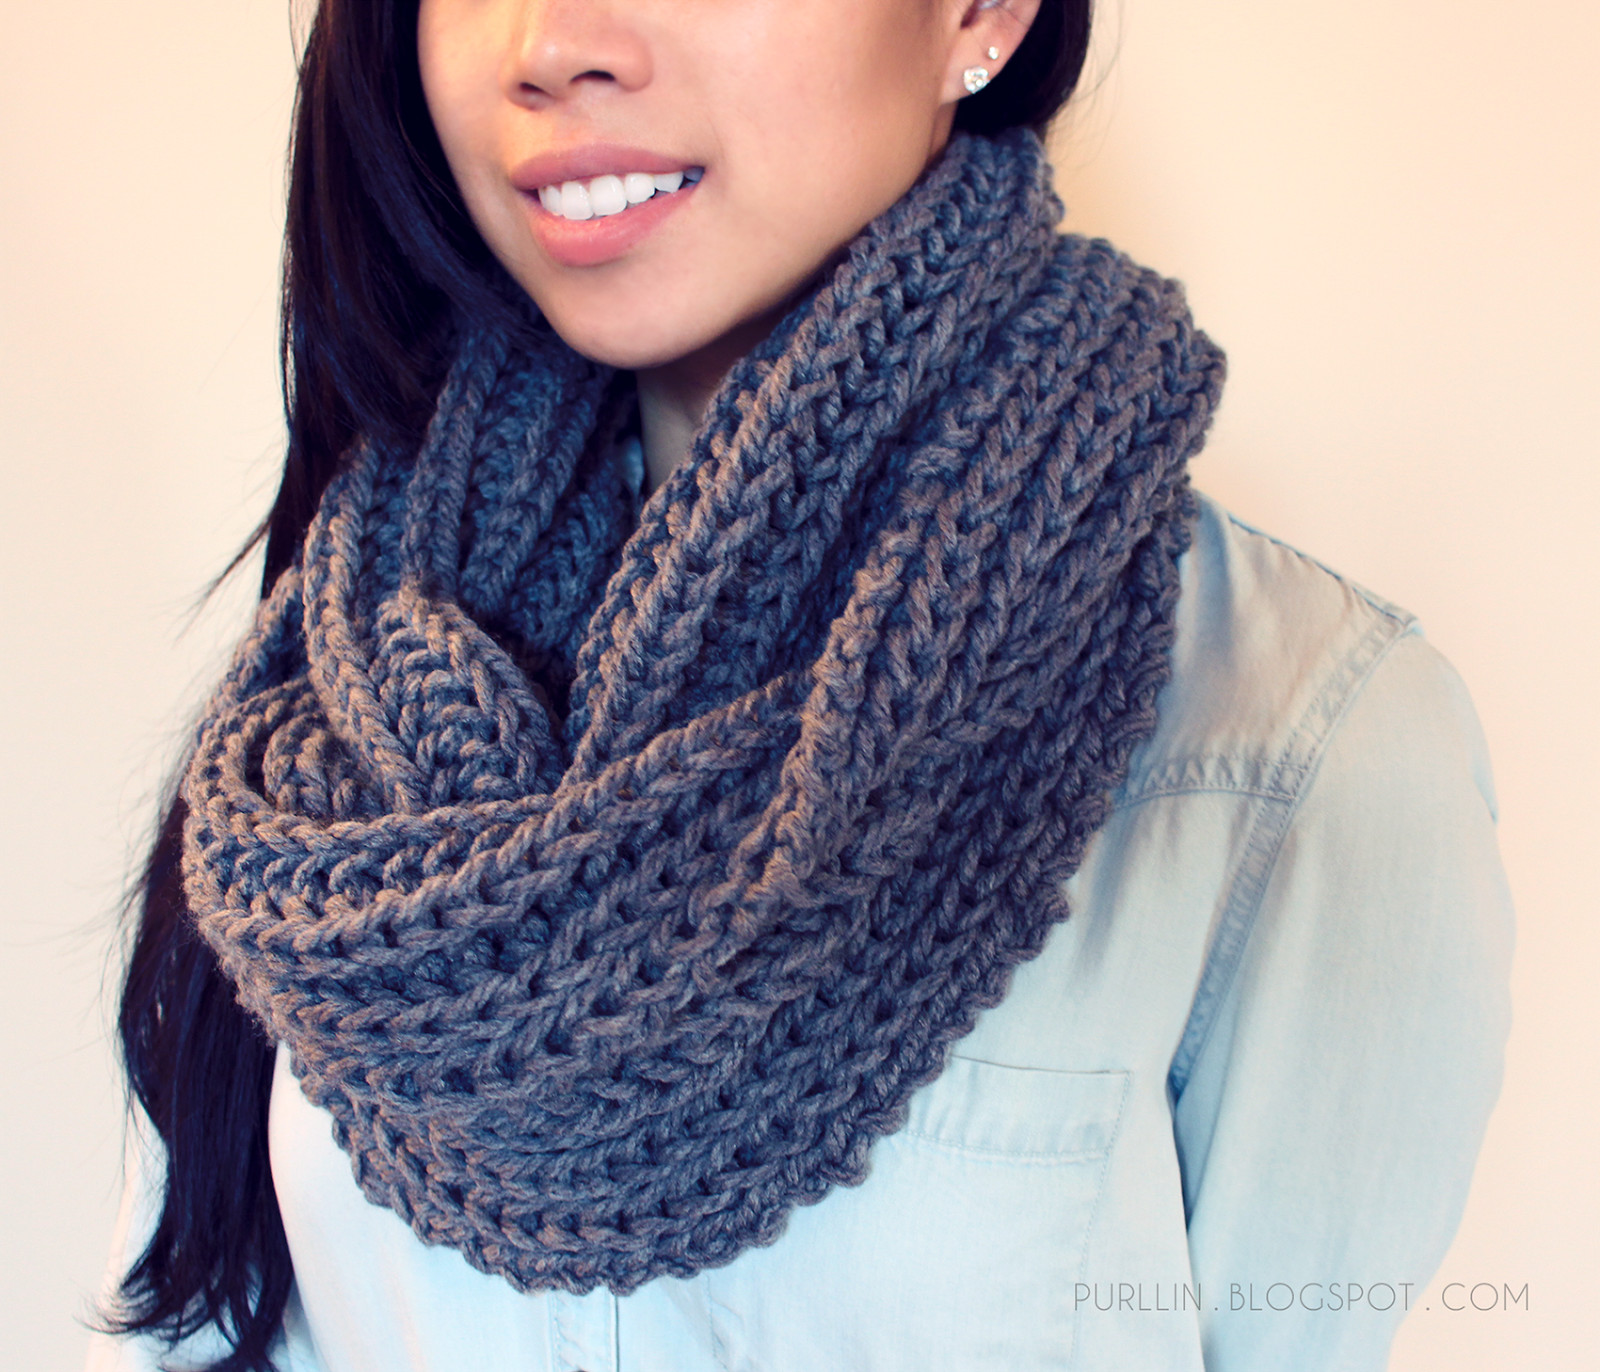 Infinity Scarf Knitting Pattern Fresh Purllin Textured November Infinity Scarf Of New 43 Images Infinity Scarf Knitting Pattern